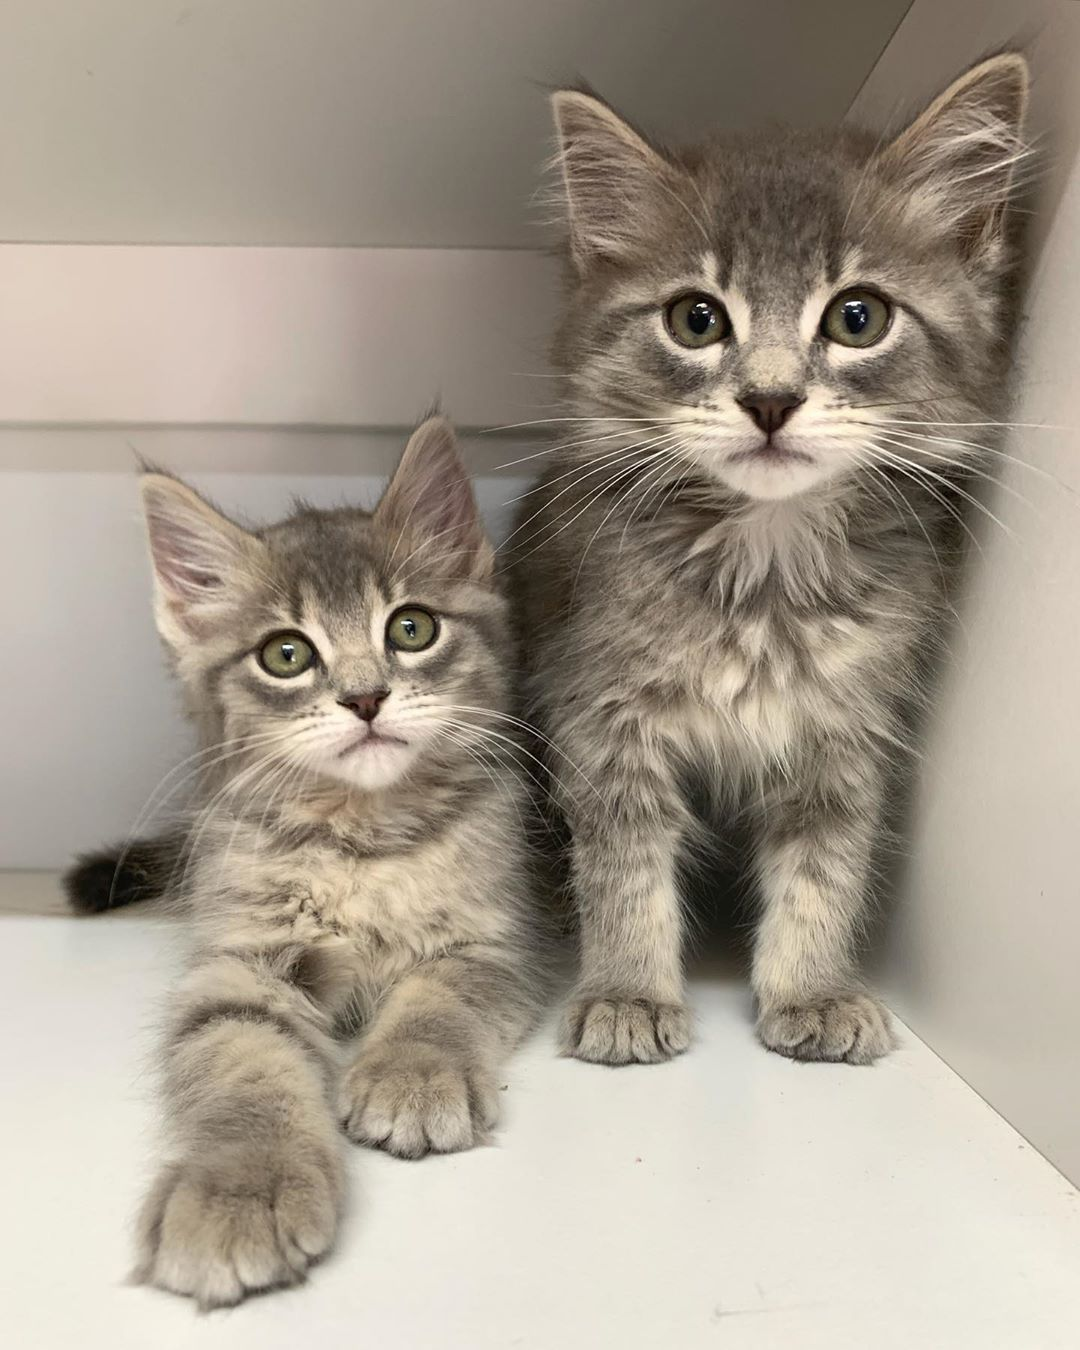 Cat Haven Wa On Instagram Kittens Available Today Meow Meow We Are Two 9 Week Old Cuties And We Are Here With Lot Cats Kittens Whiskers On Kittens